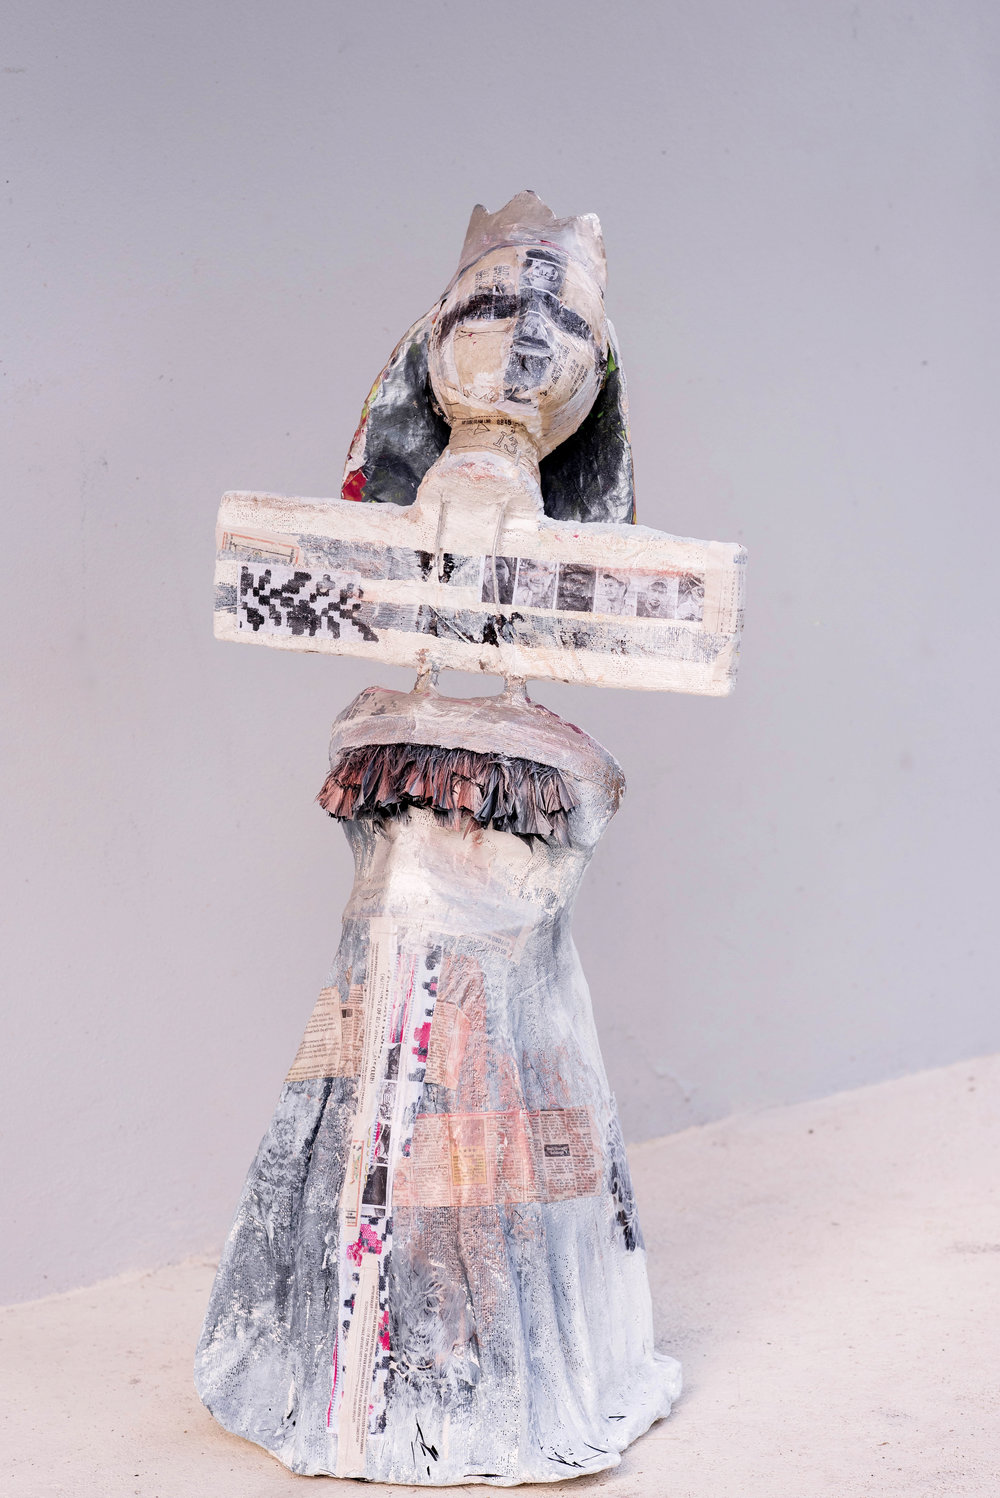 Passion  1.0 x 0.5 meters, 2018 Paper mache, plaster of paris, styrofoam, cardboard, acrylic paint, paper, duct tape, wires, fabric, spray paint, and feathers